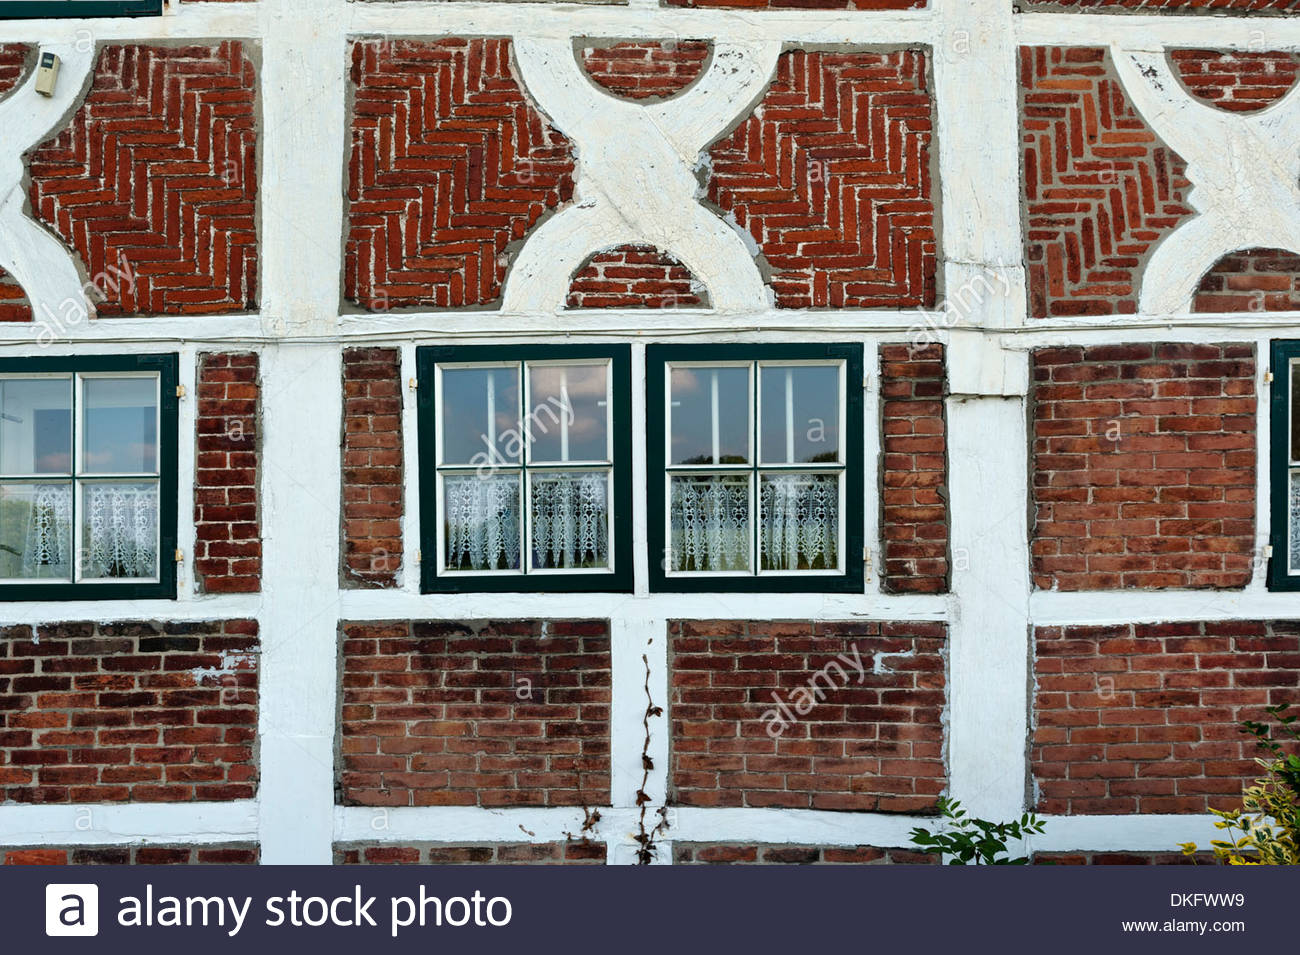 Fade of a historical timber-framed house, Vier- und Marschlande, Hamburg, Germany, close-up - Stock Image